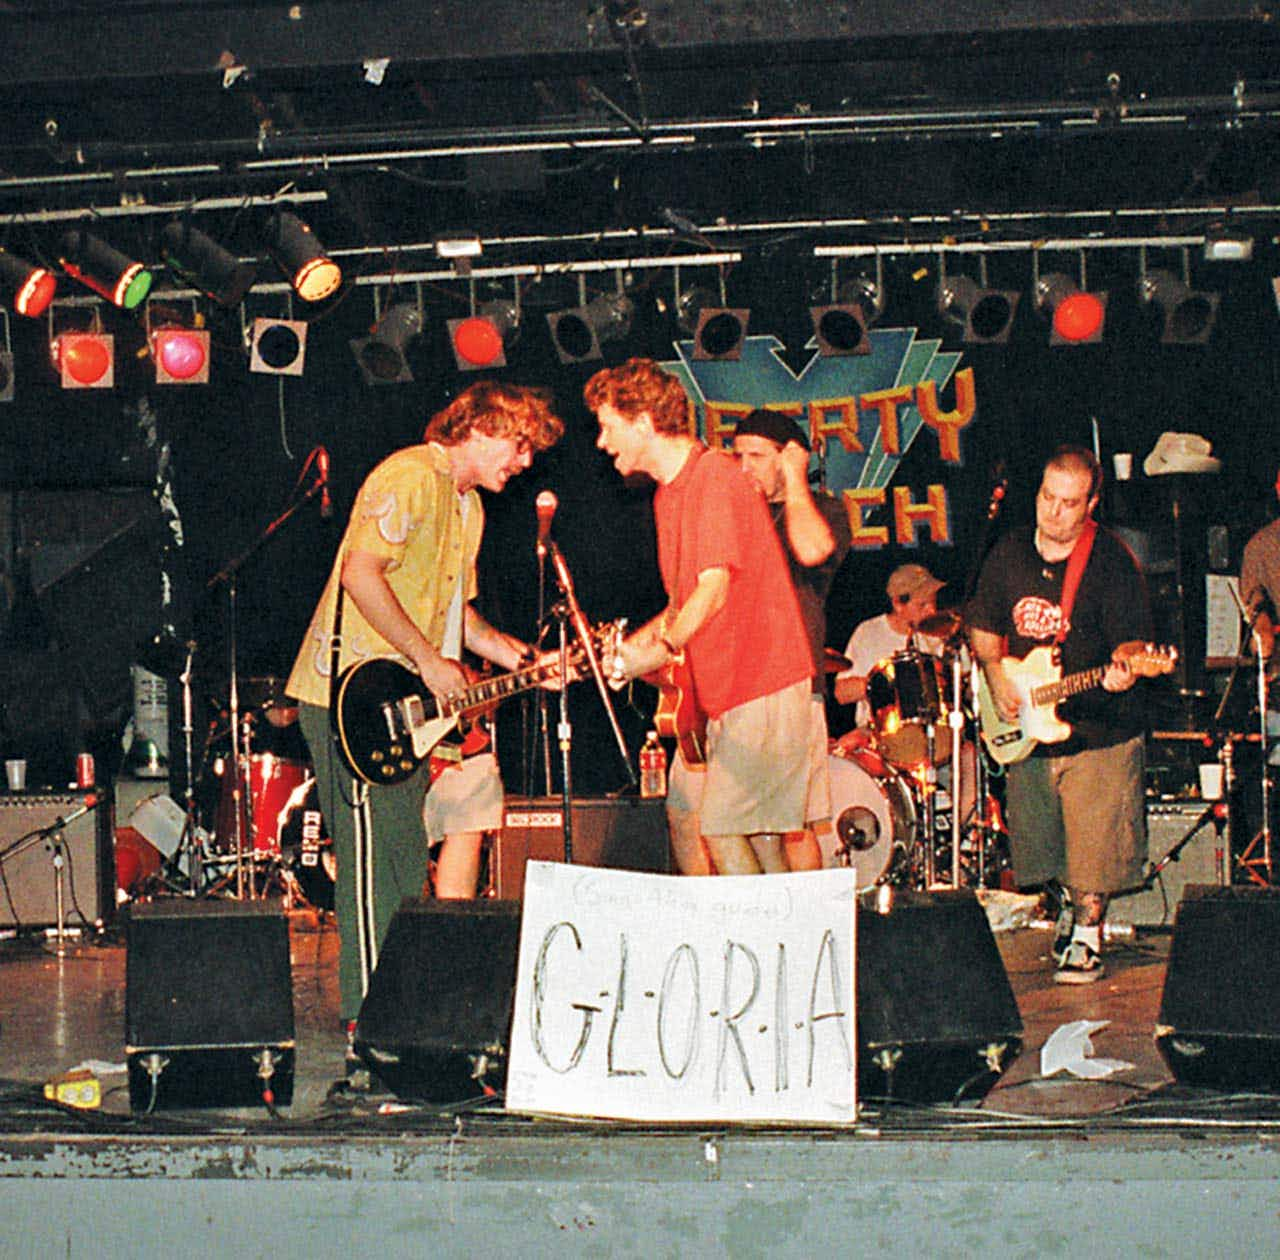 The author (wearing a red shirt) performing at the Gloriathon at Liberty Lunch in 1999.